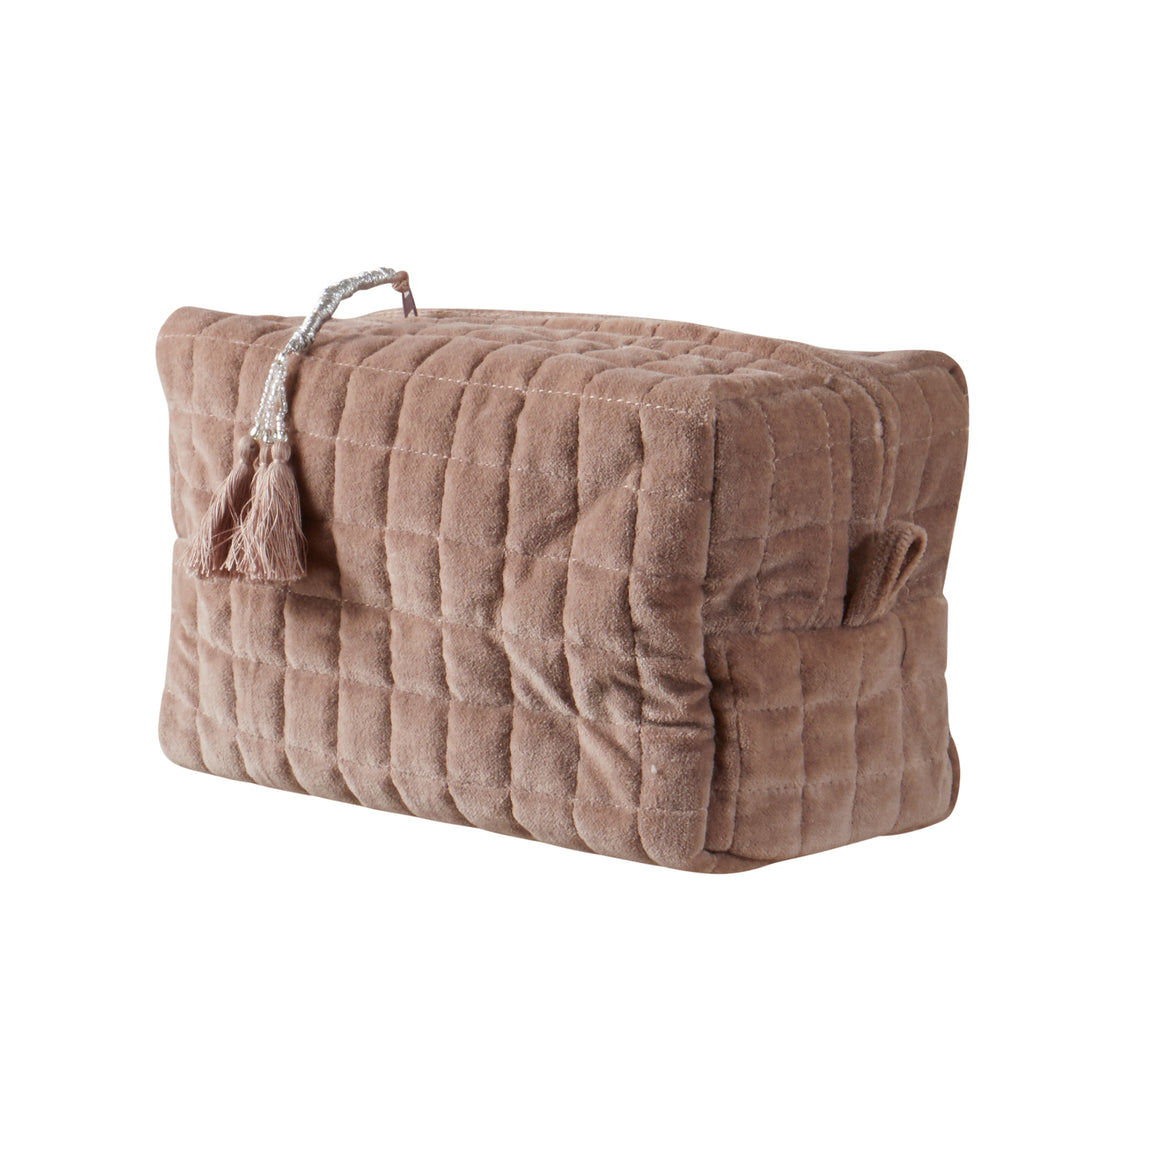 QUILTED VELVET COSMETIC BAG DUSTY PINK XL - McHugh Lifestyle BOHEMIAN GLAMOUR